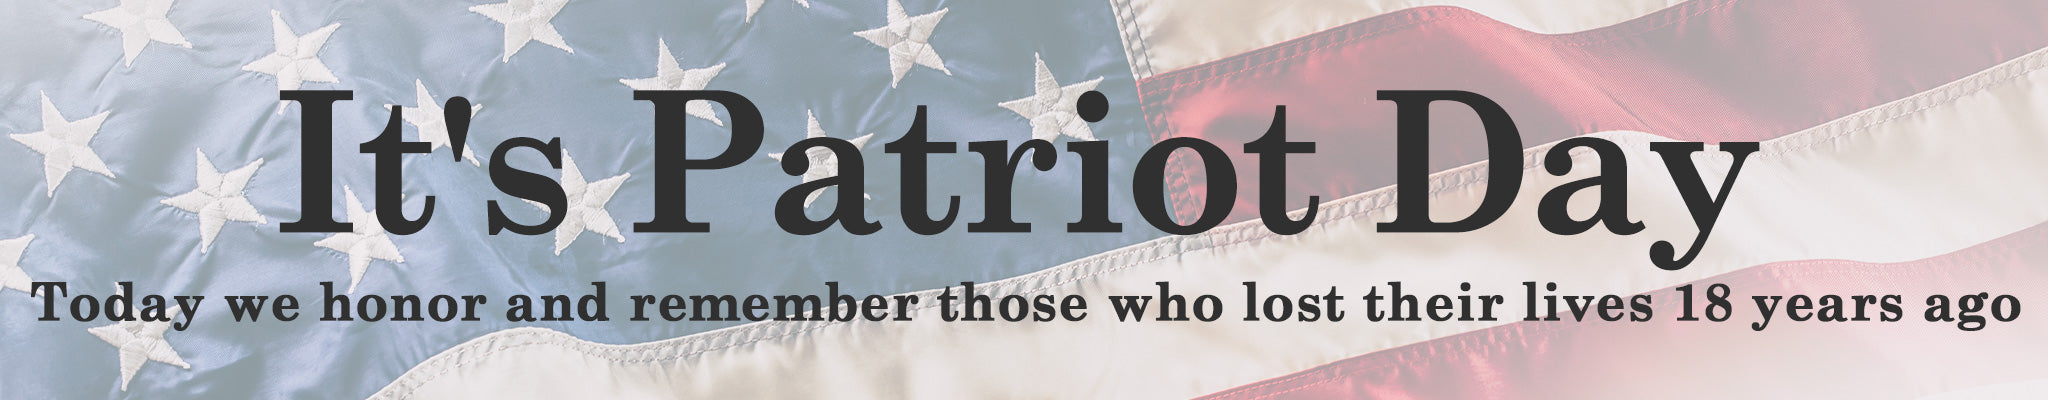 It is Patriot Day | Today we honor and remember those who lost their lives 18 years ago